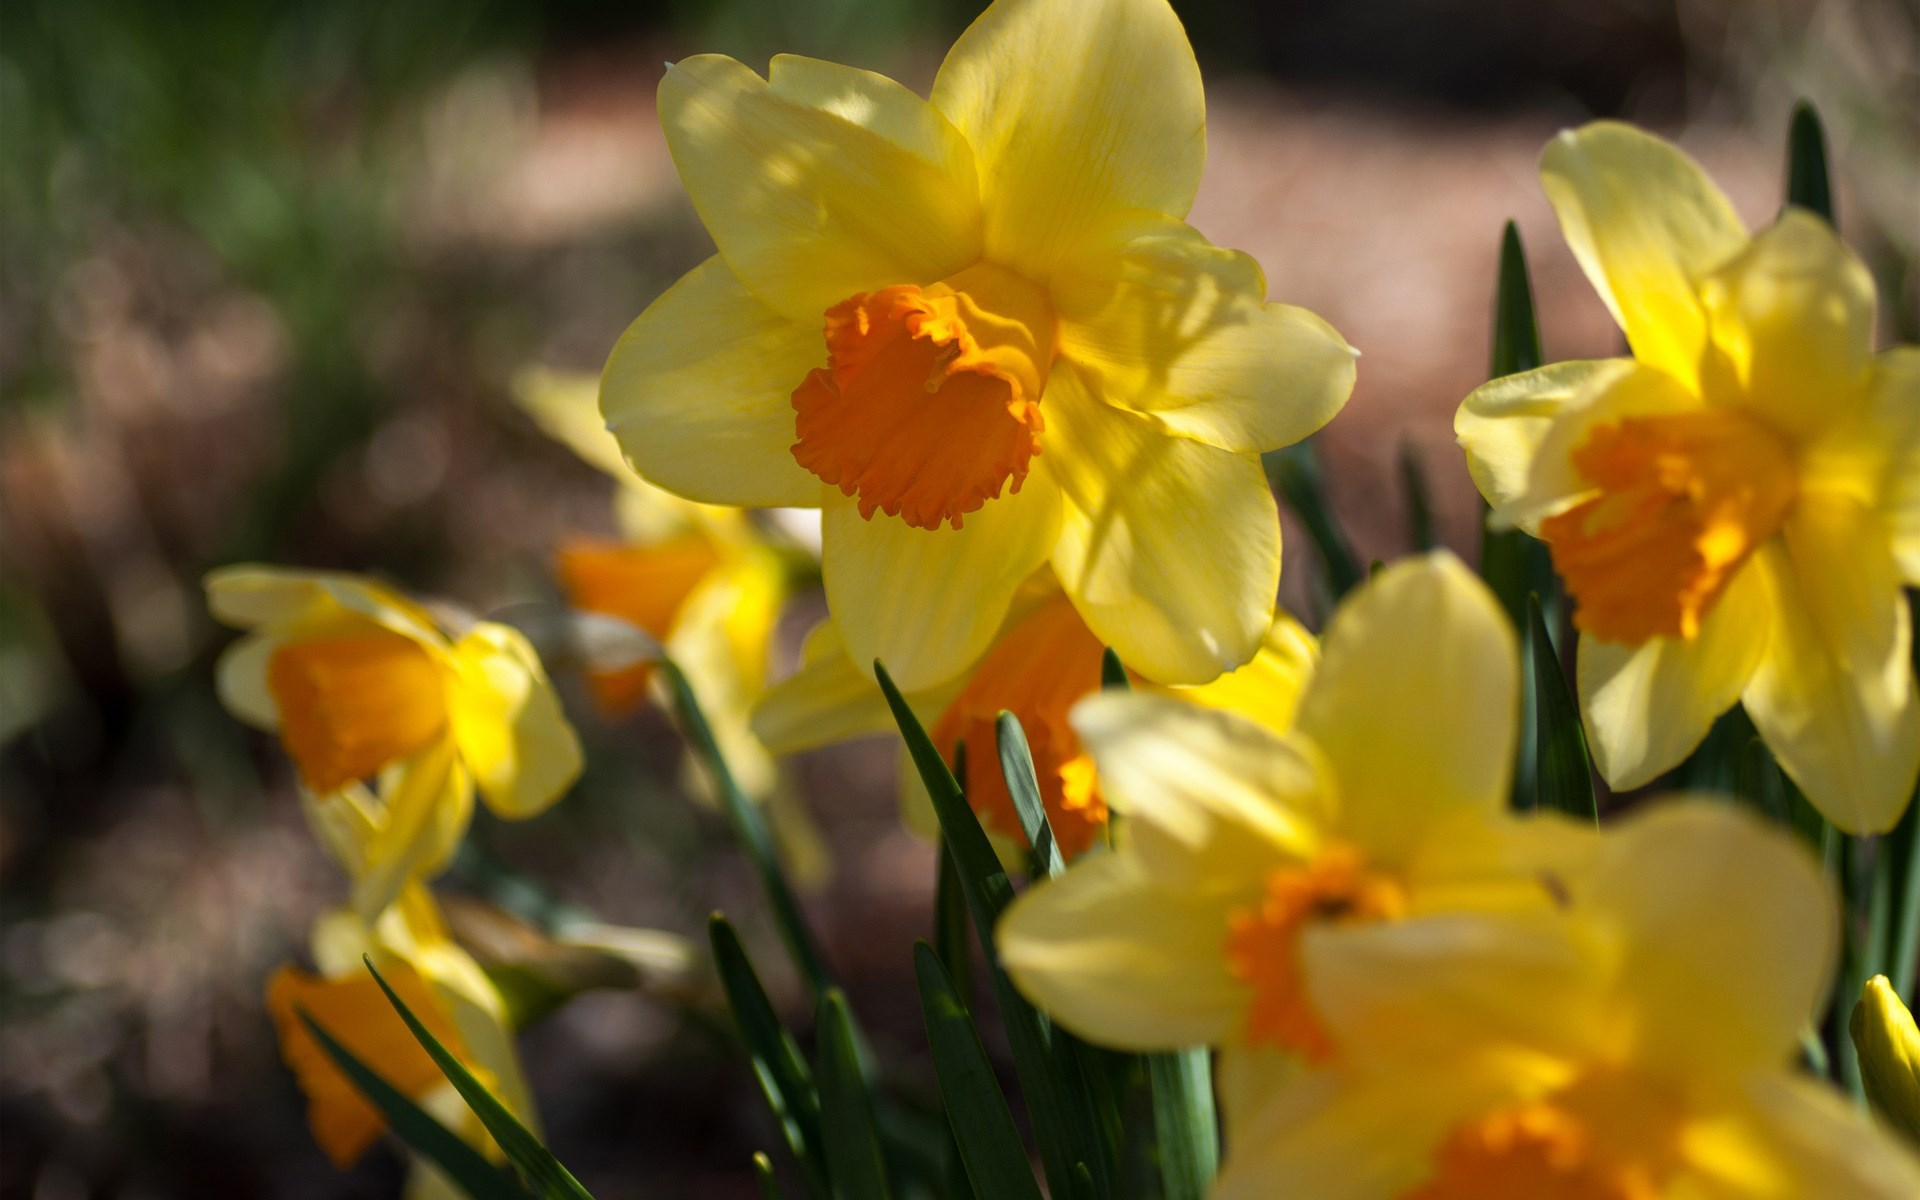 daffodils flowers yellow A1